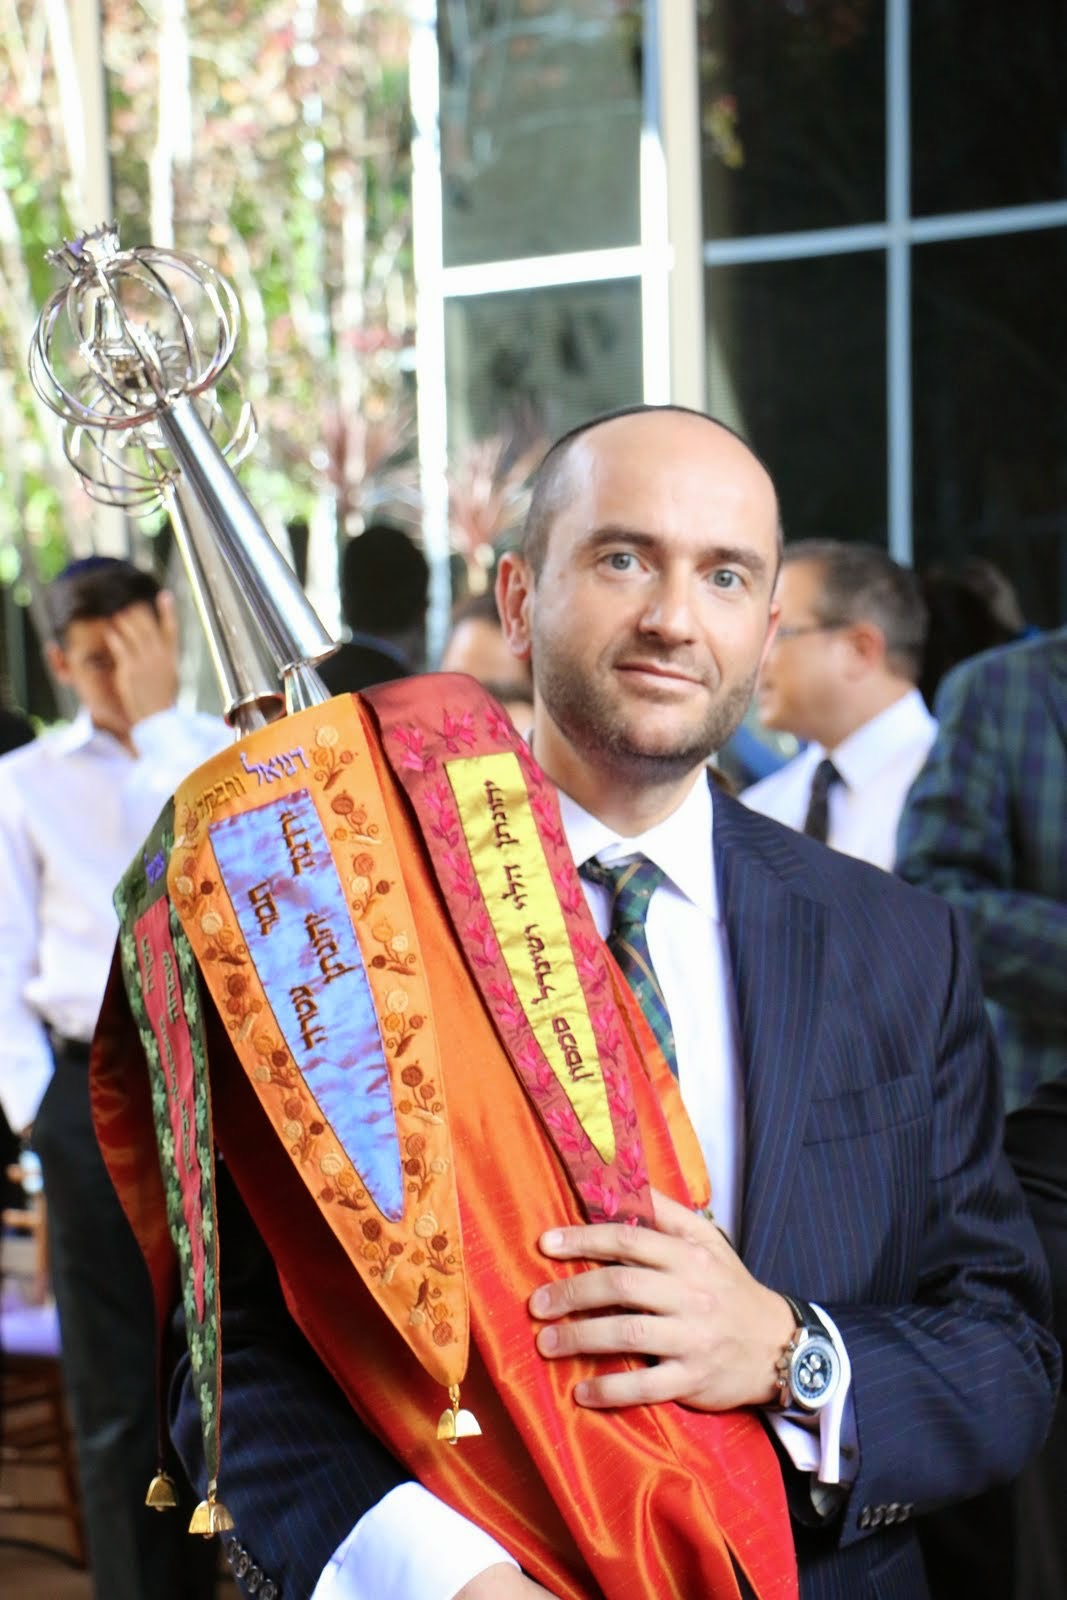 Rabbi Dunner holding the new Sefer Torah donated by Lee Samson to Beverly Hills Synagogue (08/24/2014)